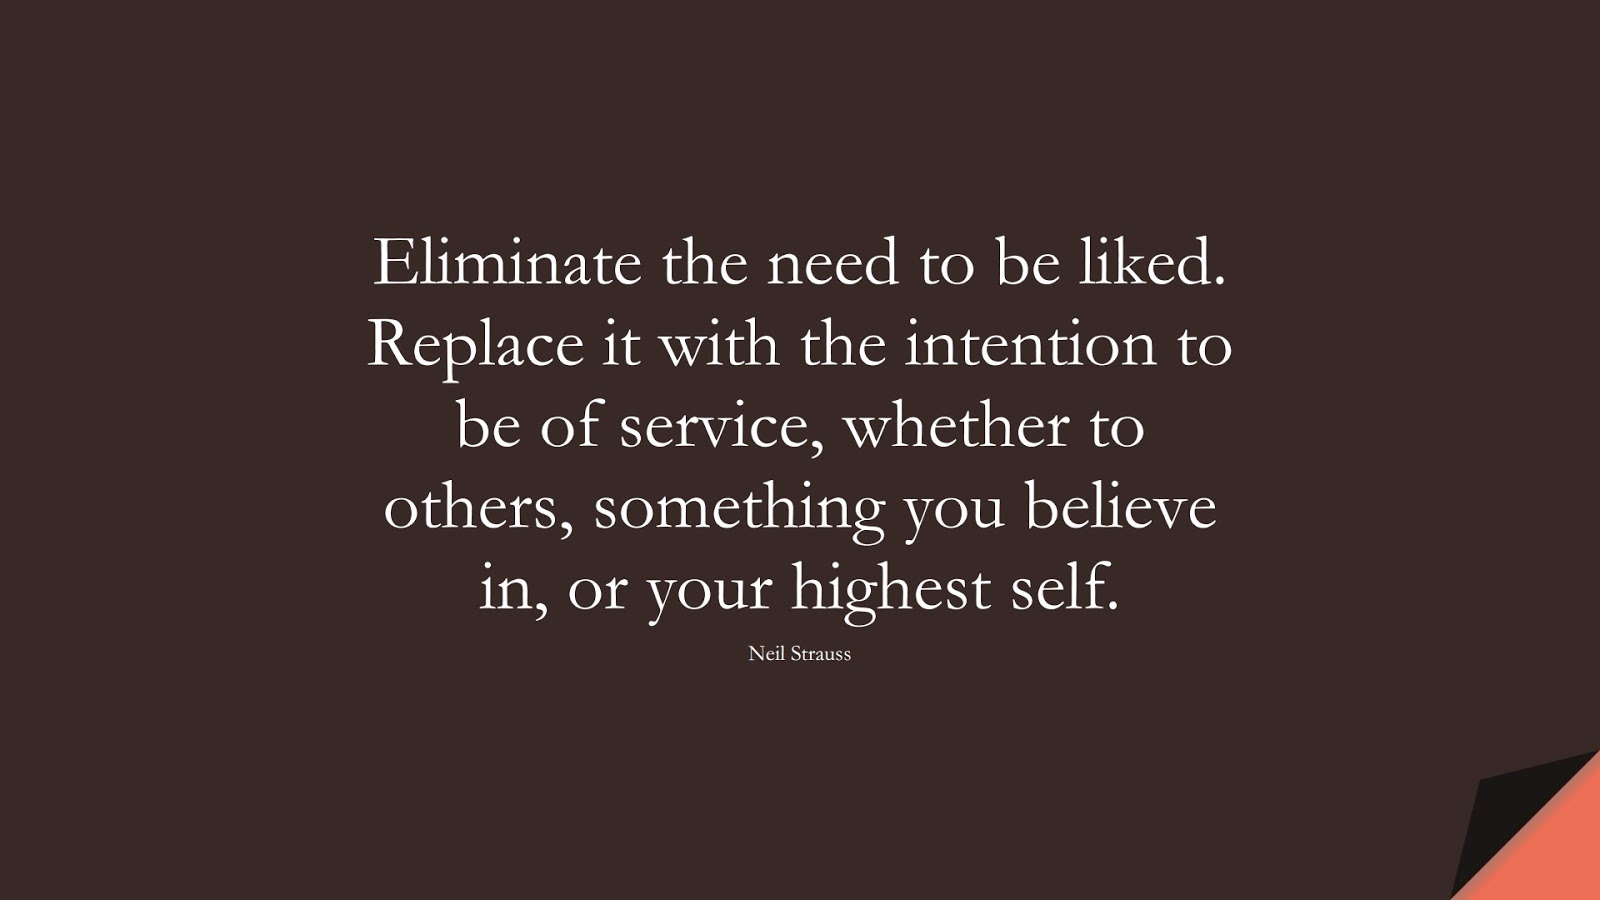 Eliminate the need to be liked. Replace it with the intention to be of service, whether to others, something you believe in, or your highest self. (Neil Strauss);  #LoveYourselfQuotes